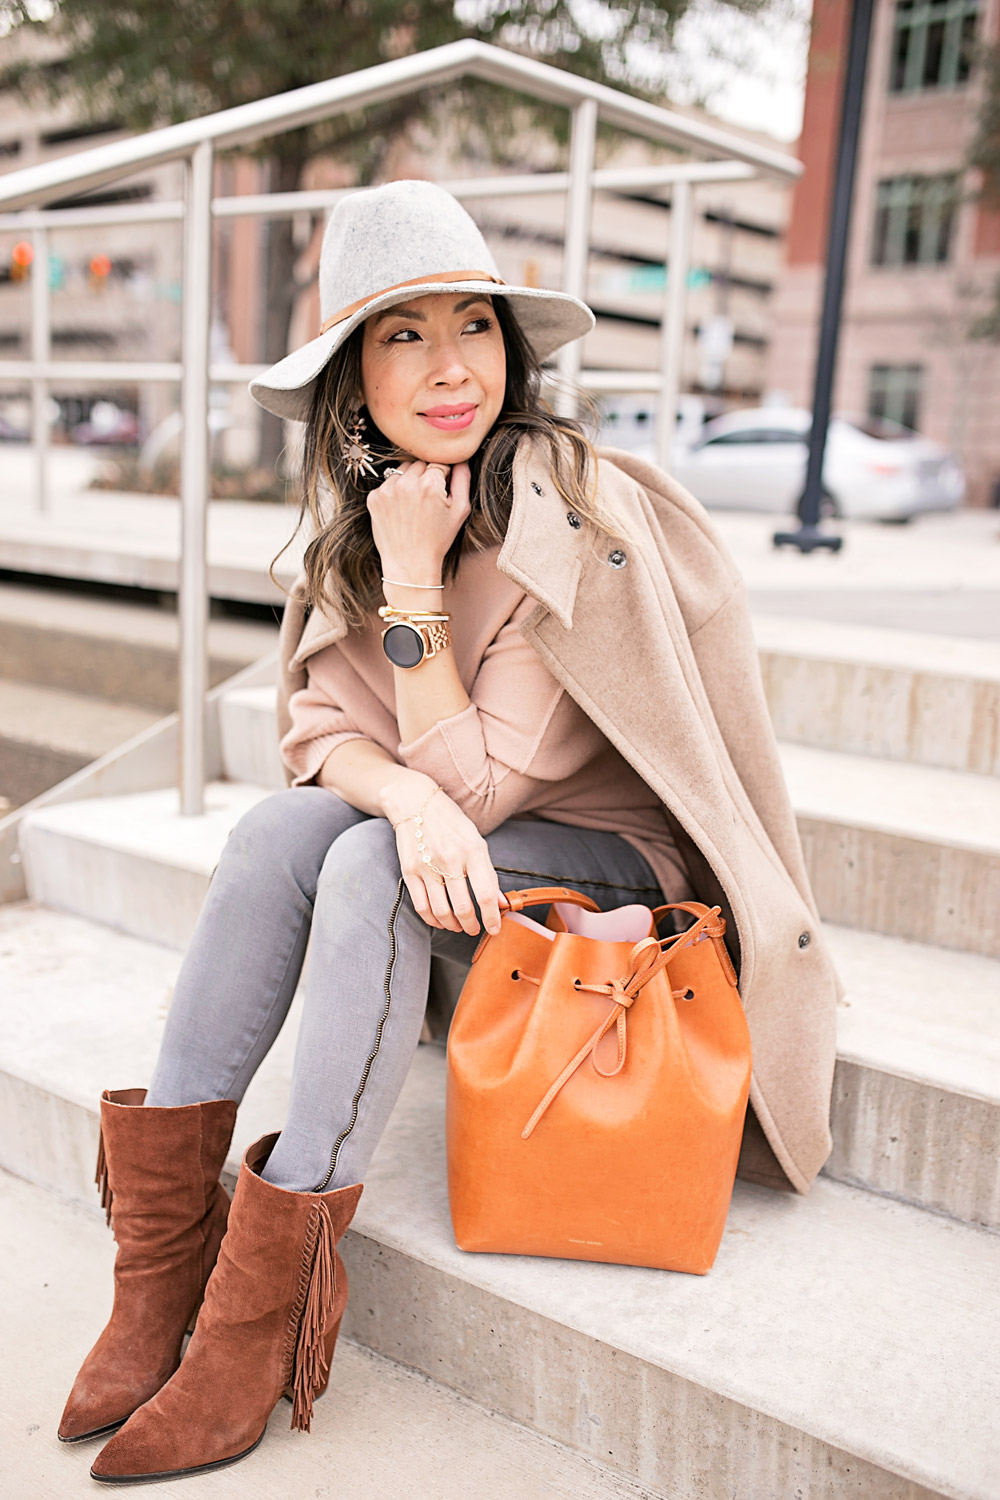 fossil q wander rose gold smartwatch, tan off the shoulder sweater with frame le skinny grey jeans, mansur gavriel bucket bag, grey fedora